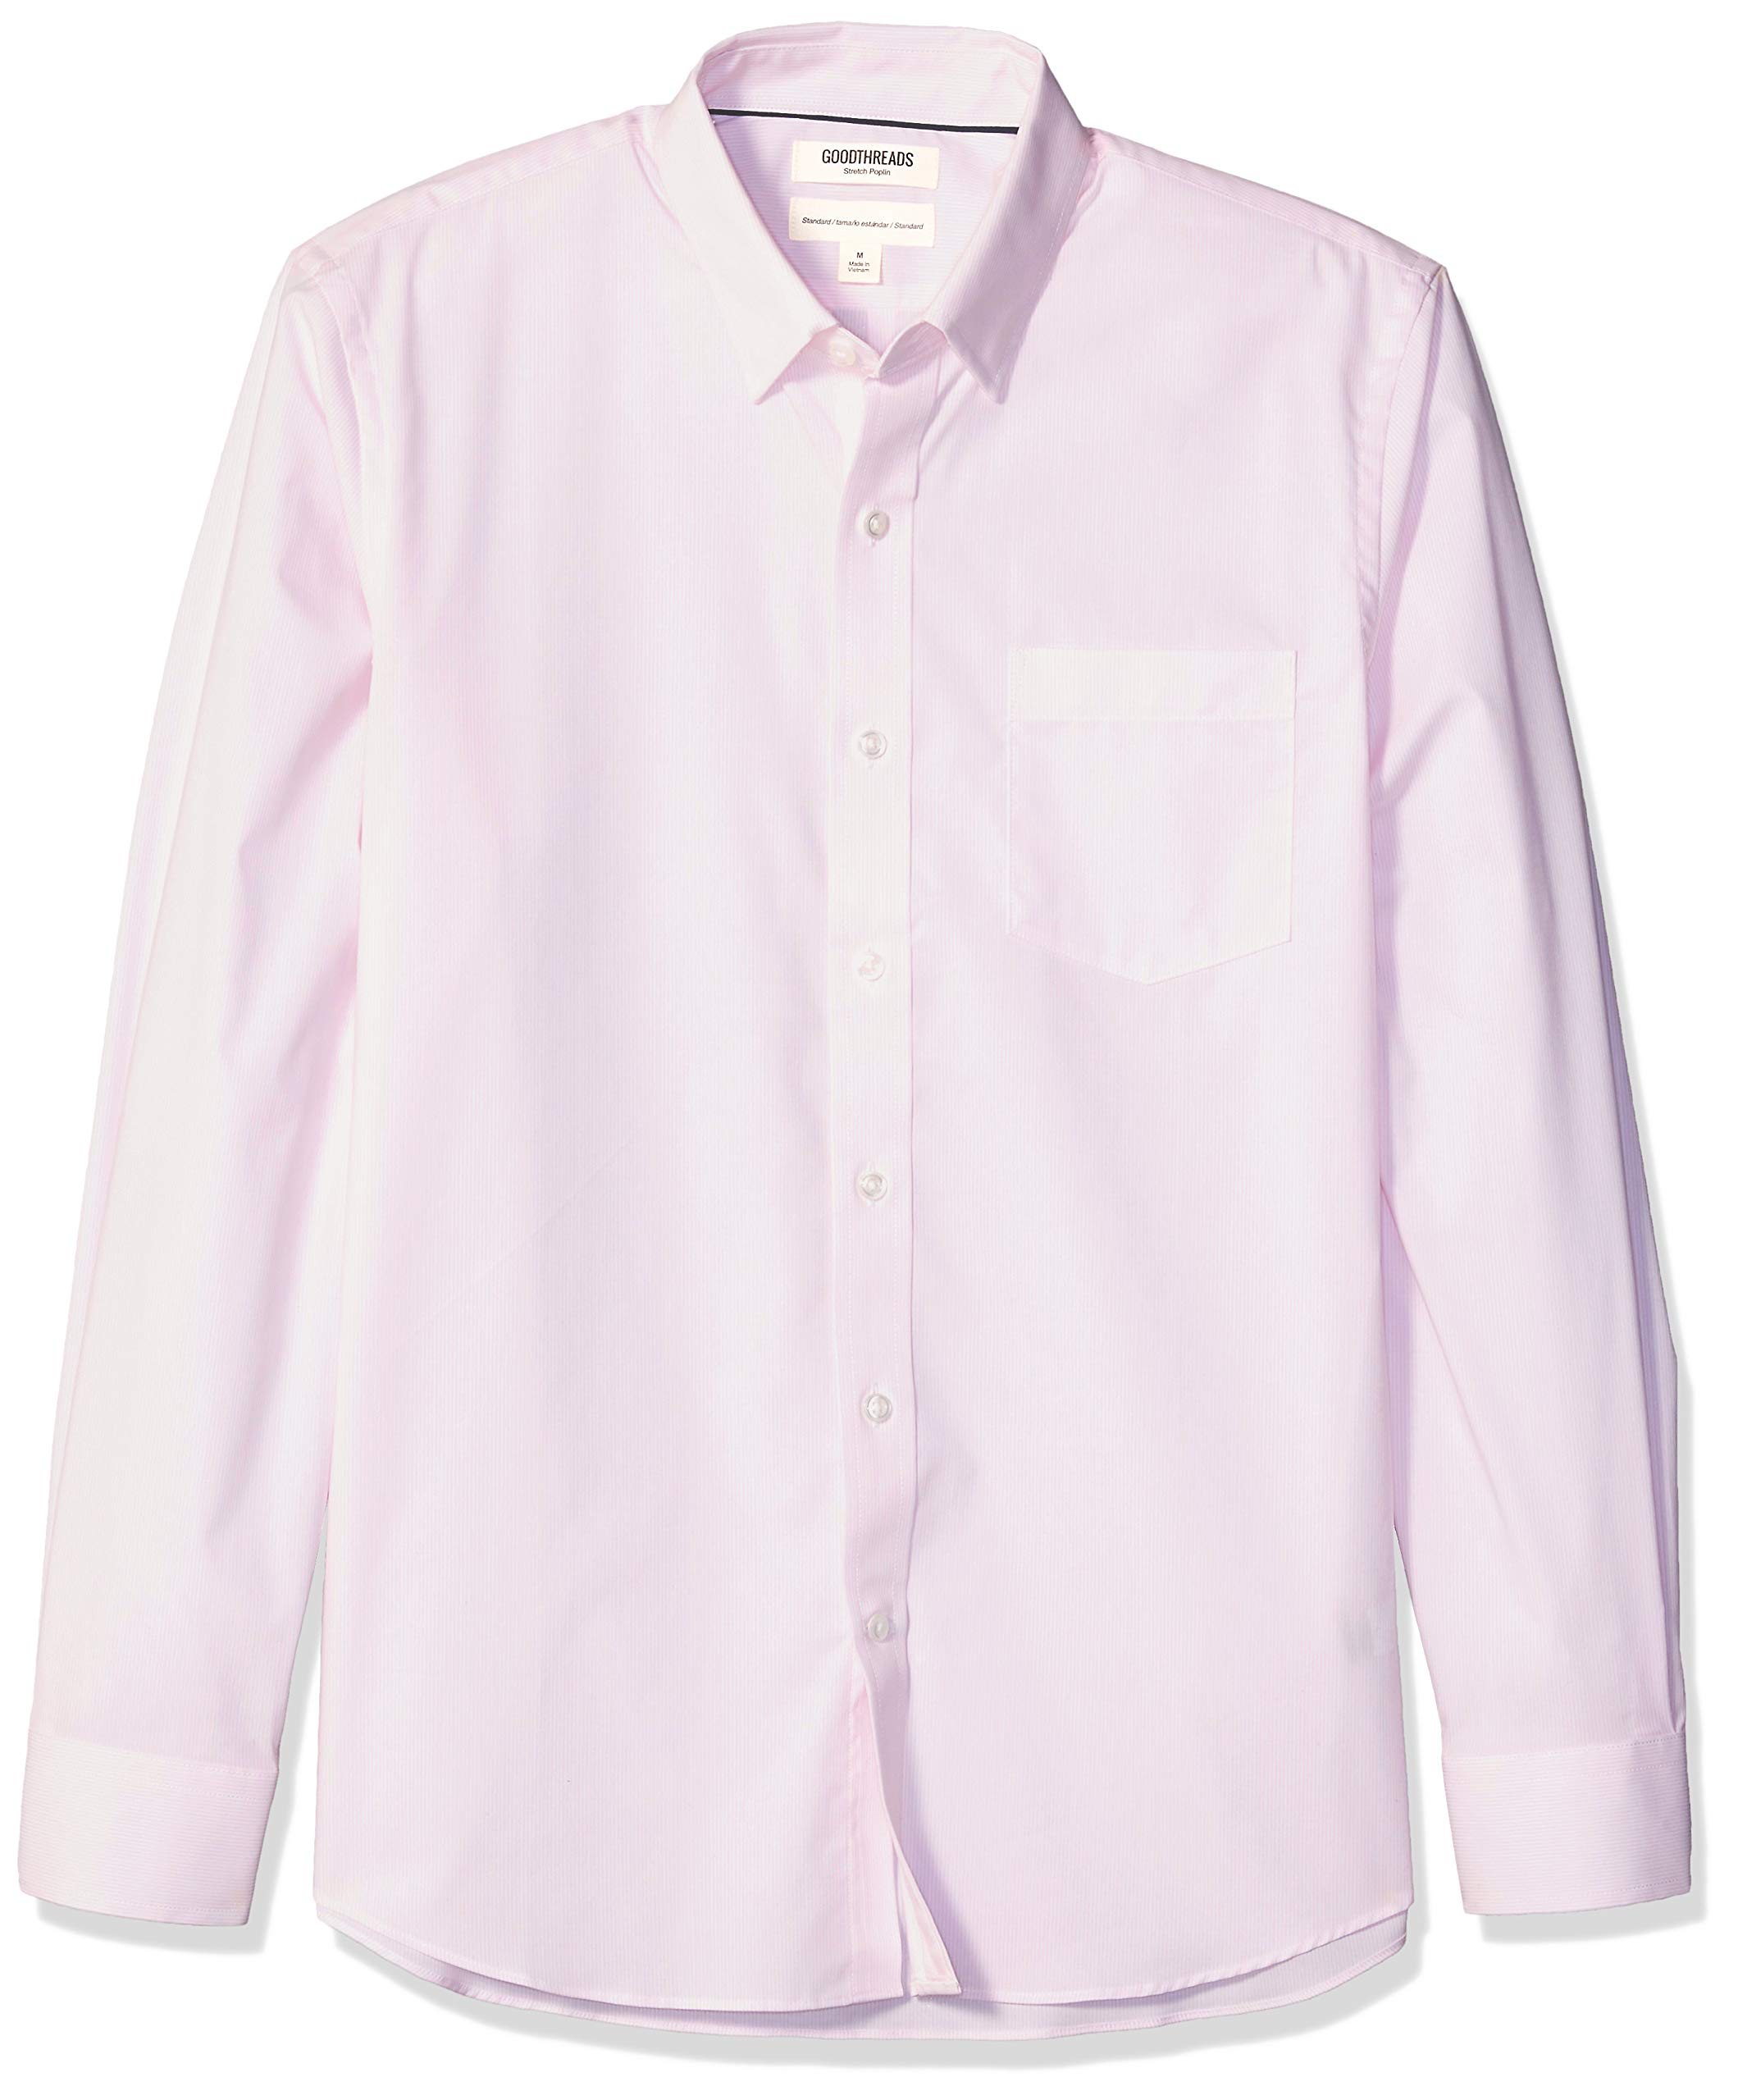 Amazon Brand - Goodthreads Men's Standard-Fit Long-Sleeve Wrinkle Resistant Comfort Stretch Poplin with Easy-Care